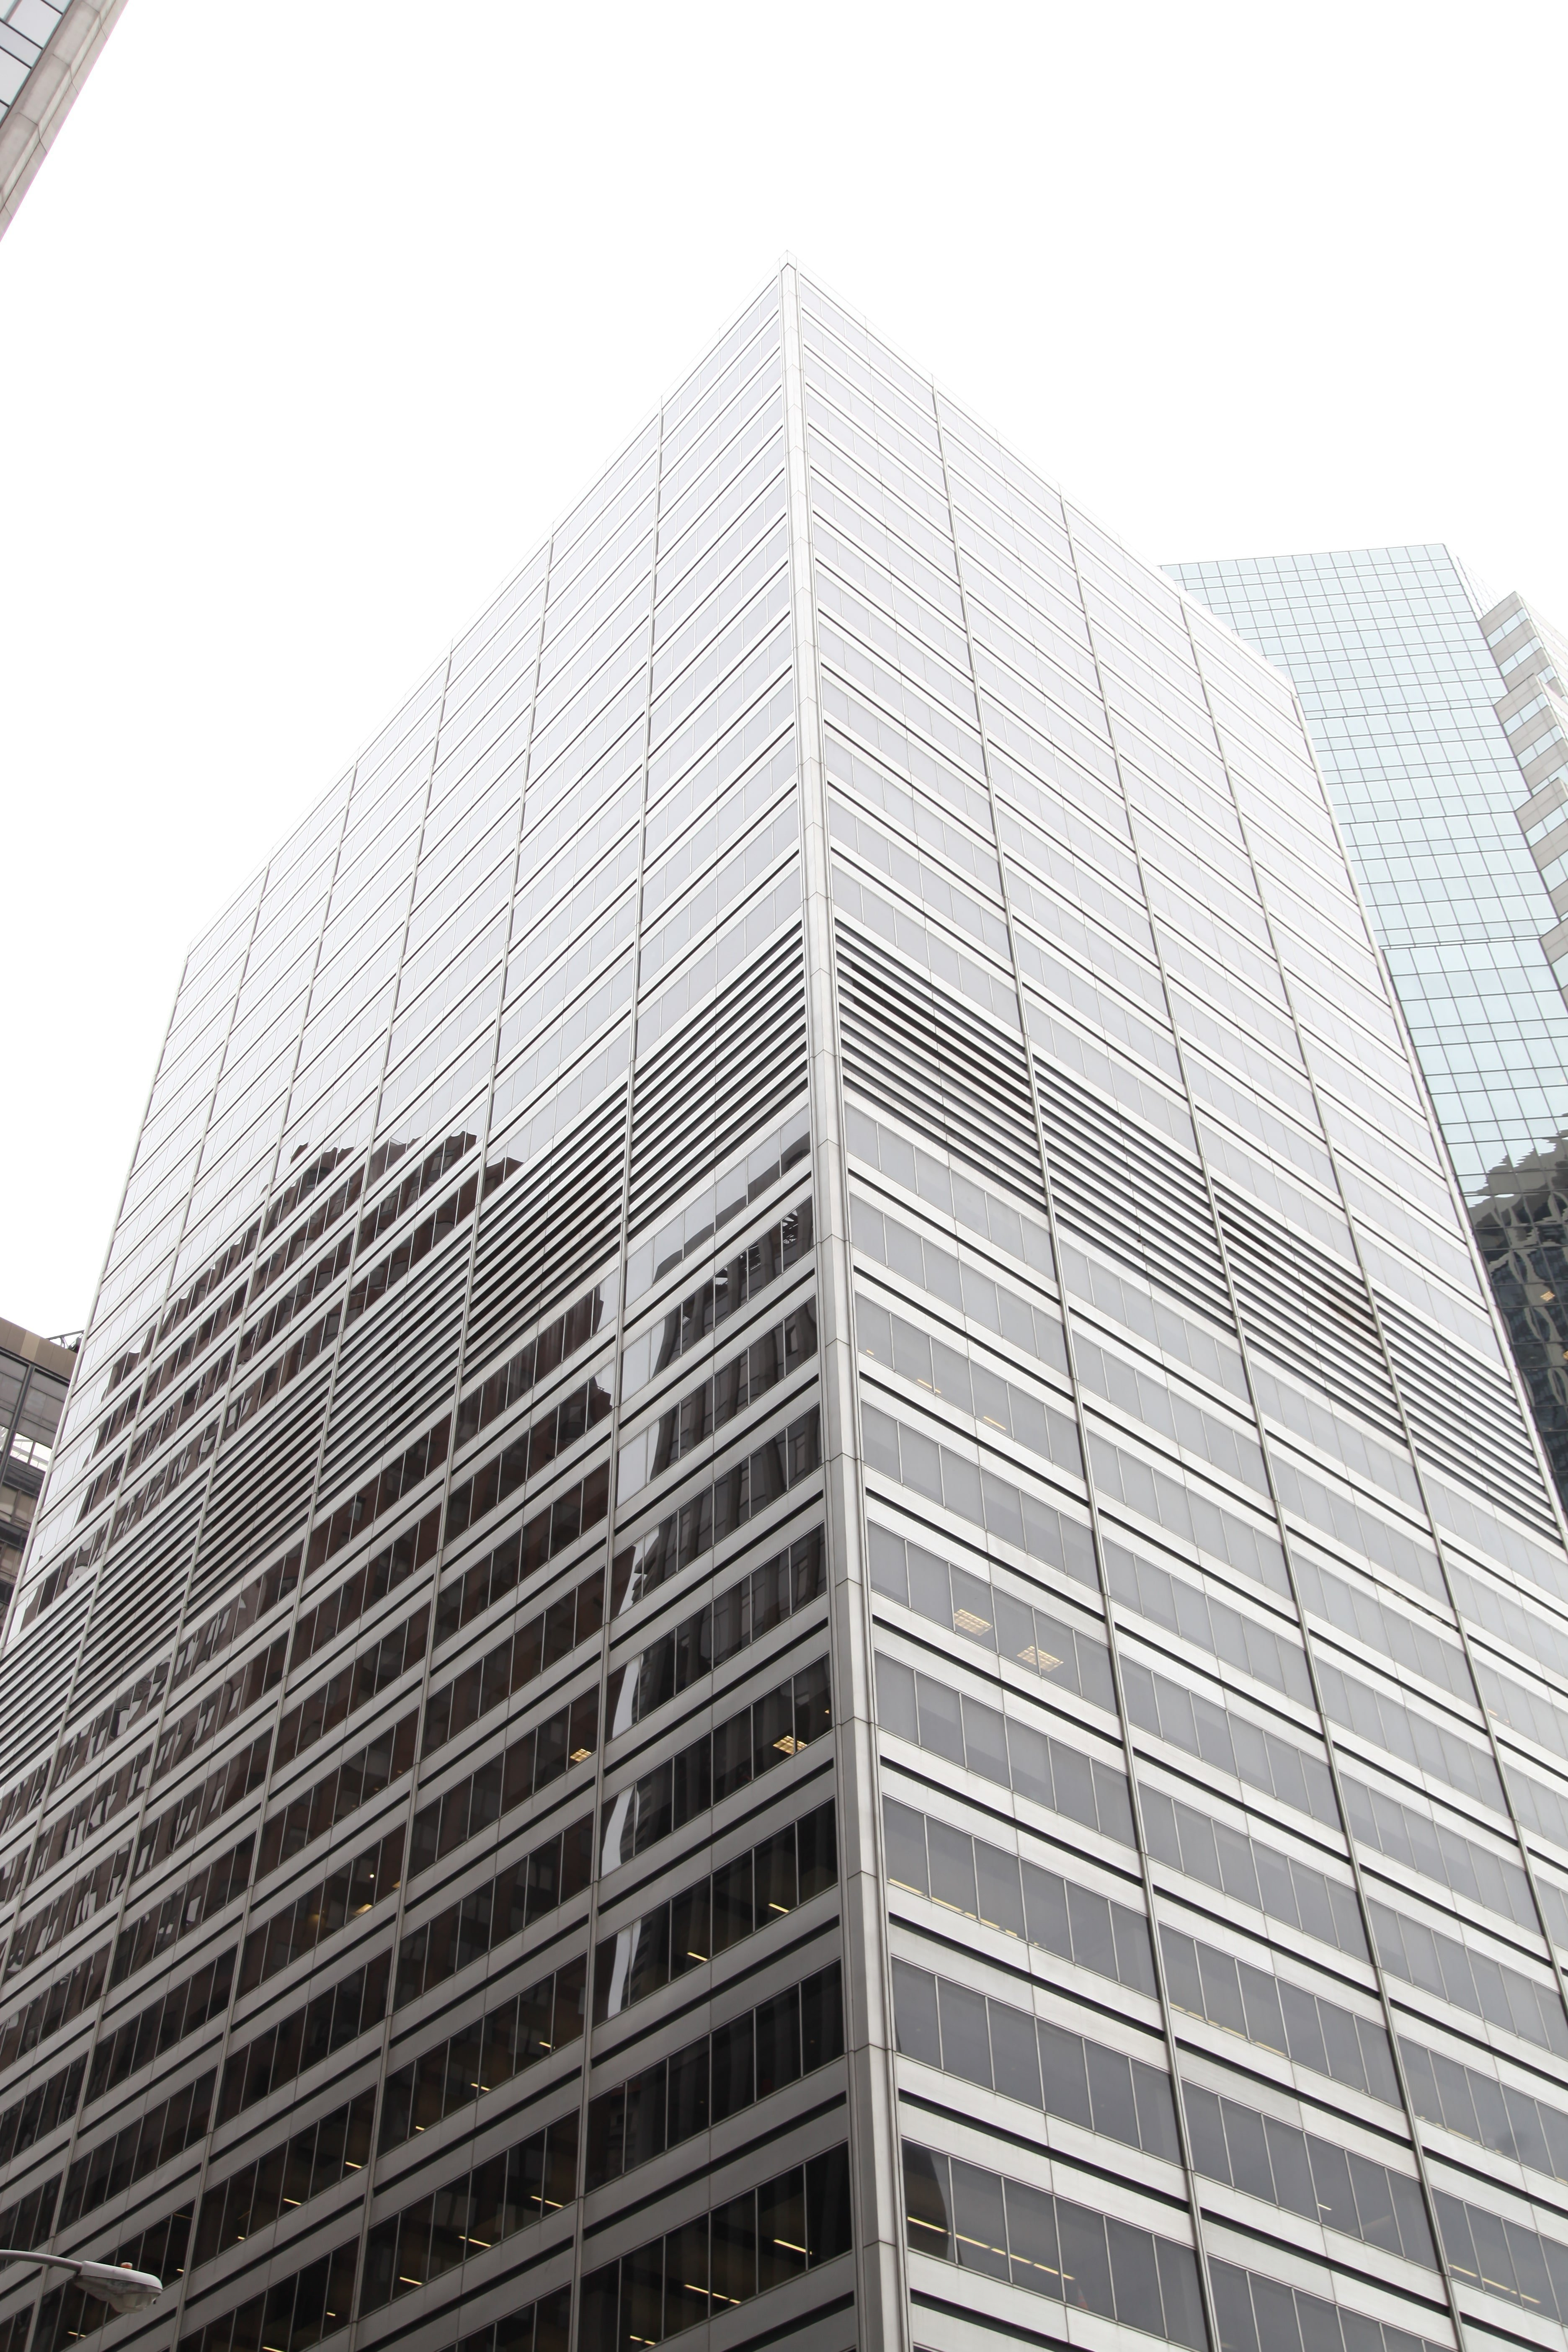 77 Water Street, Financial District, New York, NY 10005 | SquareFoot